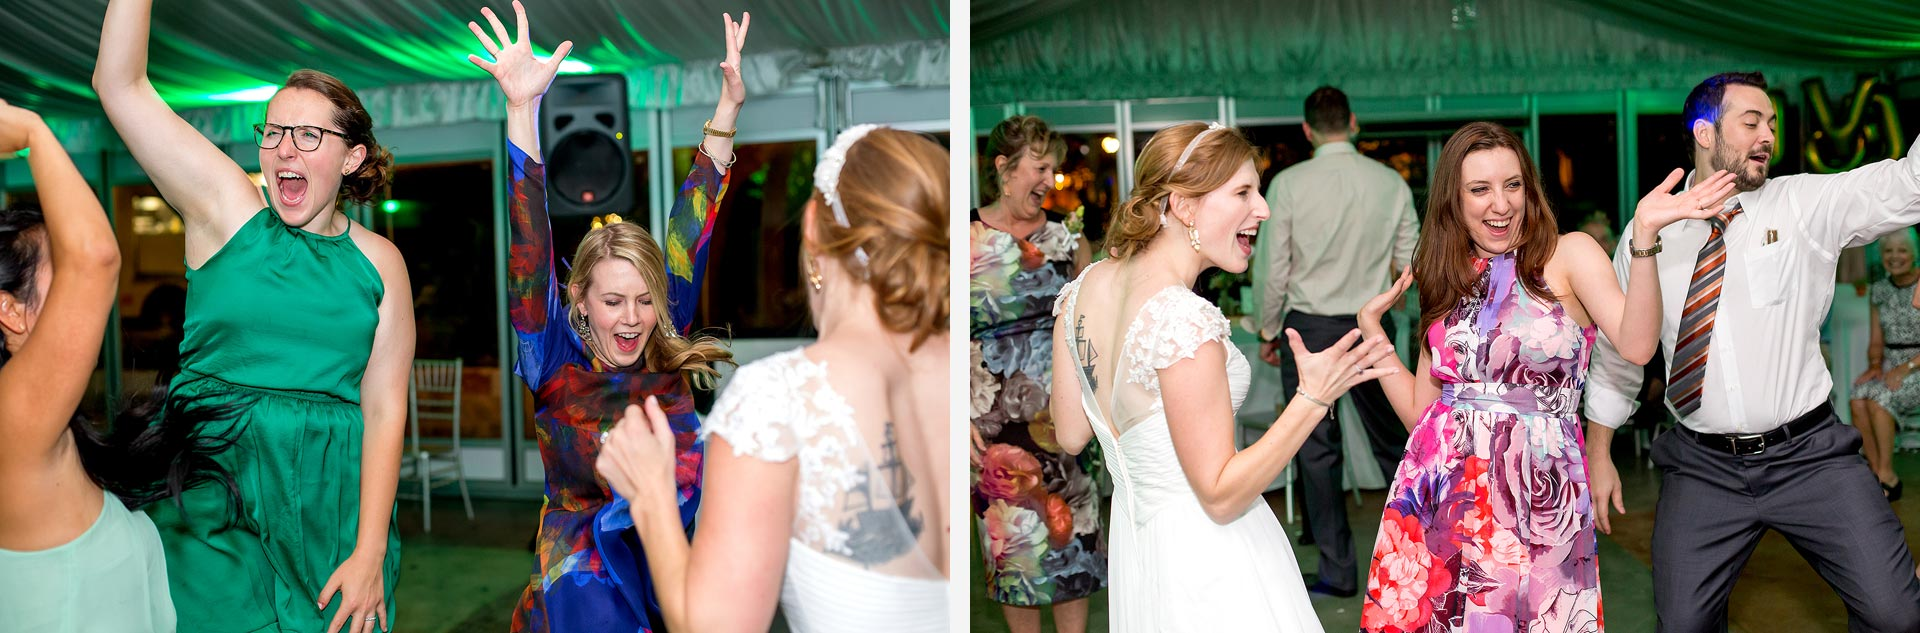 Dancing at Hummingbird House Wedding